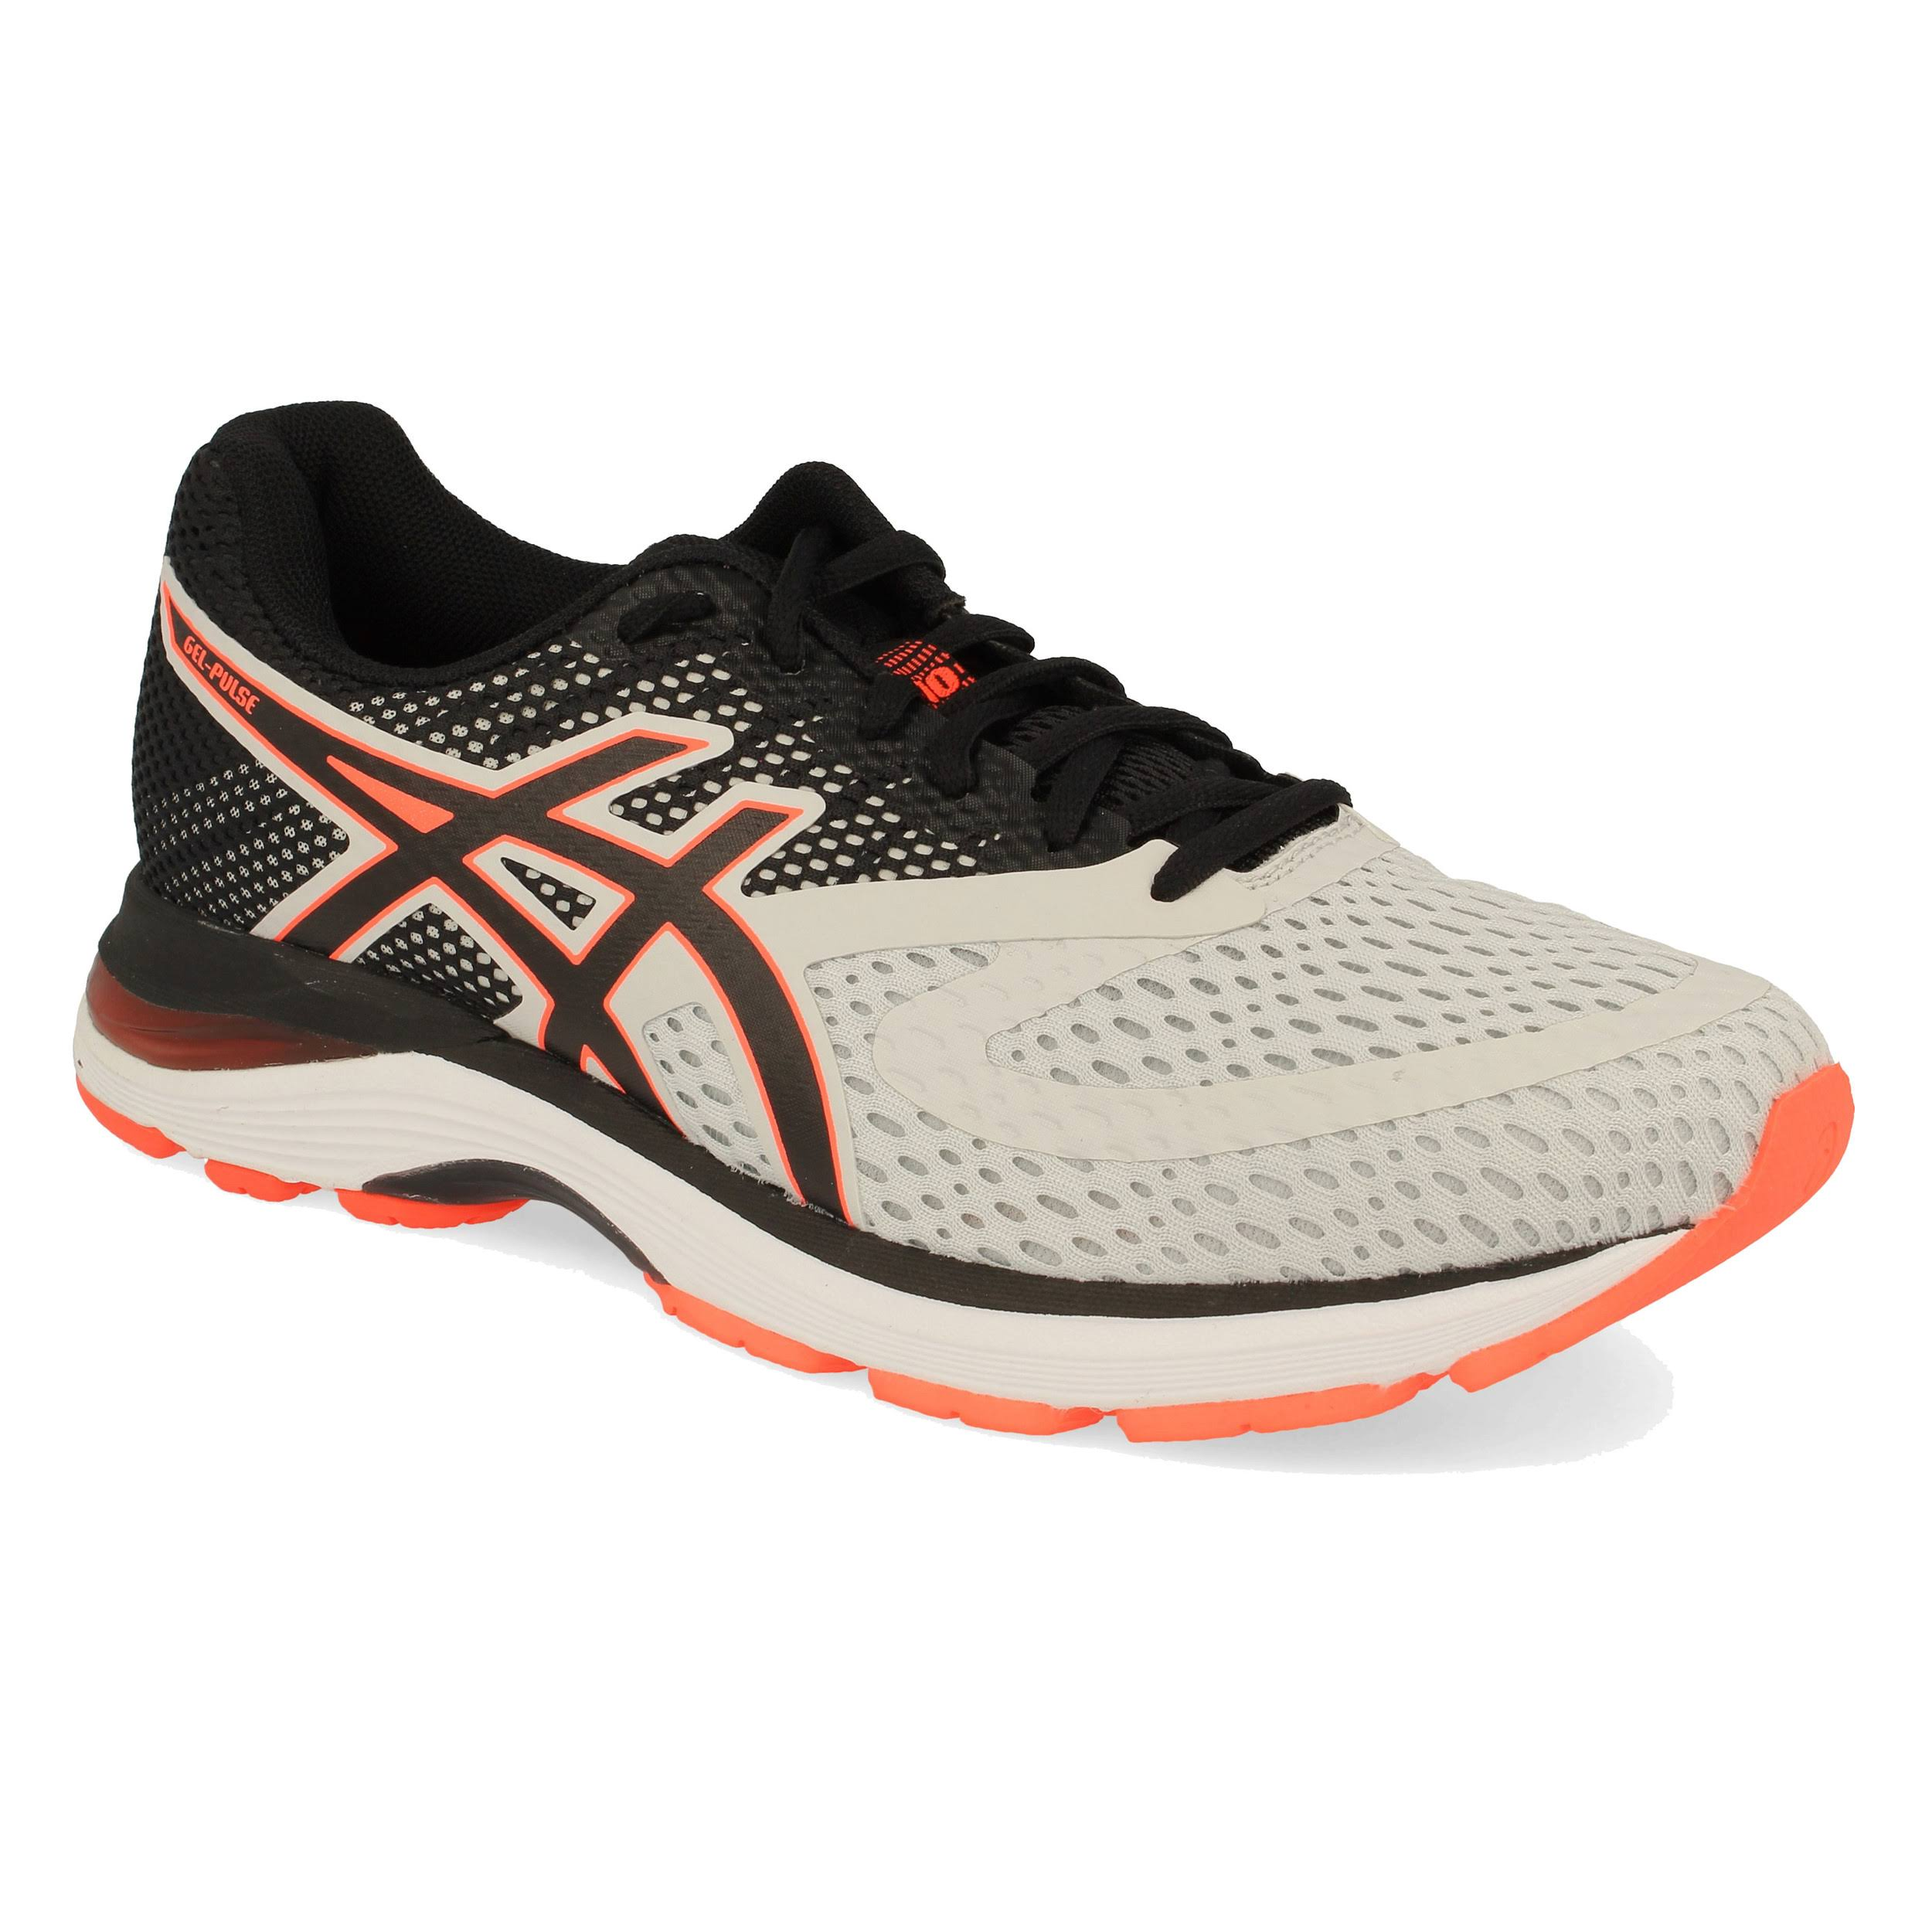 a0480c658df46 Asics Gel-Pulse 10 Men s Running Shoes Trainers